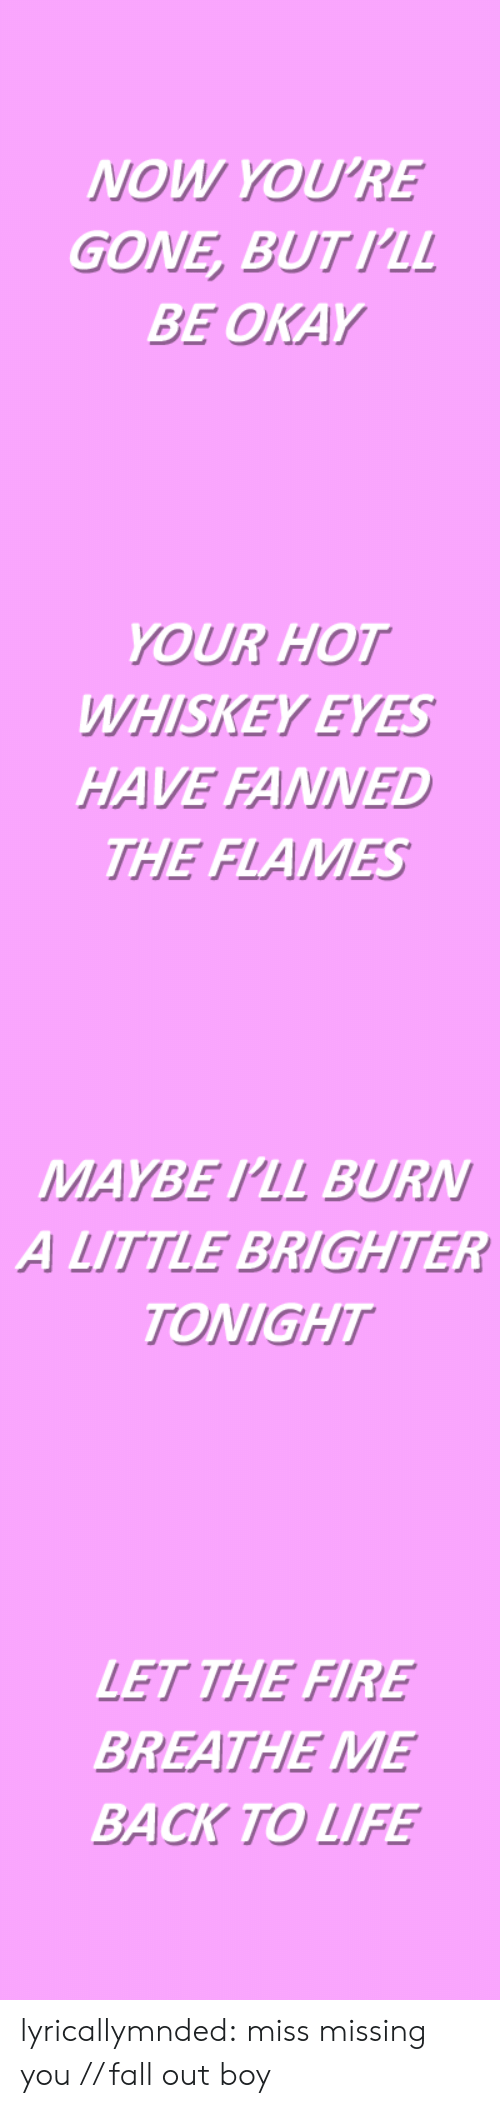 Fall Out Boy: NOW YOU'RE  GONE, BUTIL  BE OKAY   YOUR HOT  WHISKEY EYES  HAVE FANNED  THE FLAMES   MAYBE PLL BURN  A LITTLE BRIGHTER  TONIGHT   LET THE FIRE  BREATHE ME  BACK TO LIFE lyricallymnded:  miss missing you // fall out boy